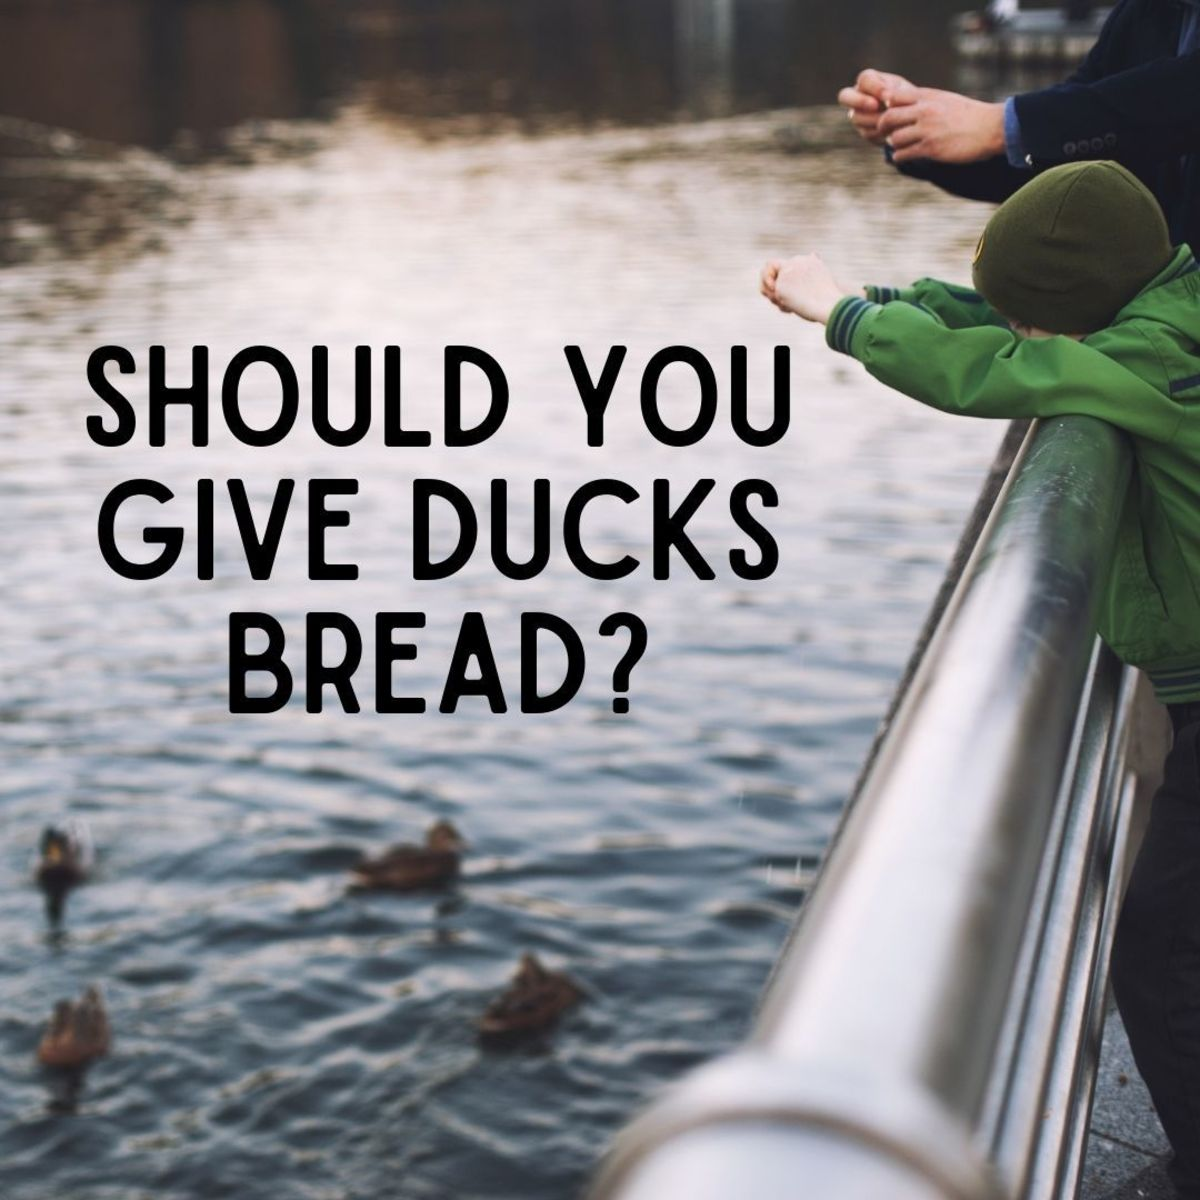 Is it ok to feed the ducks?